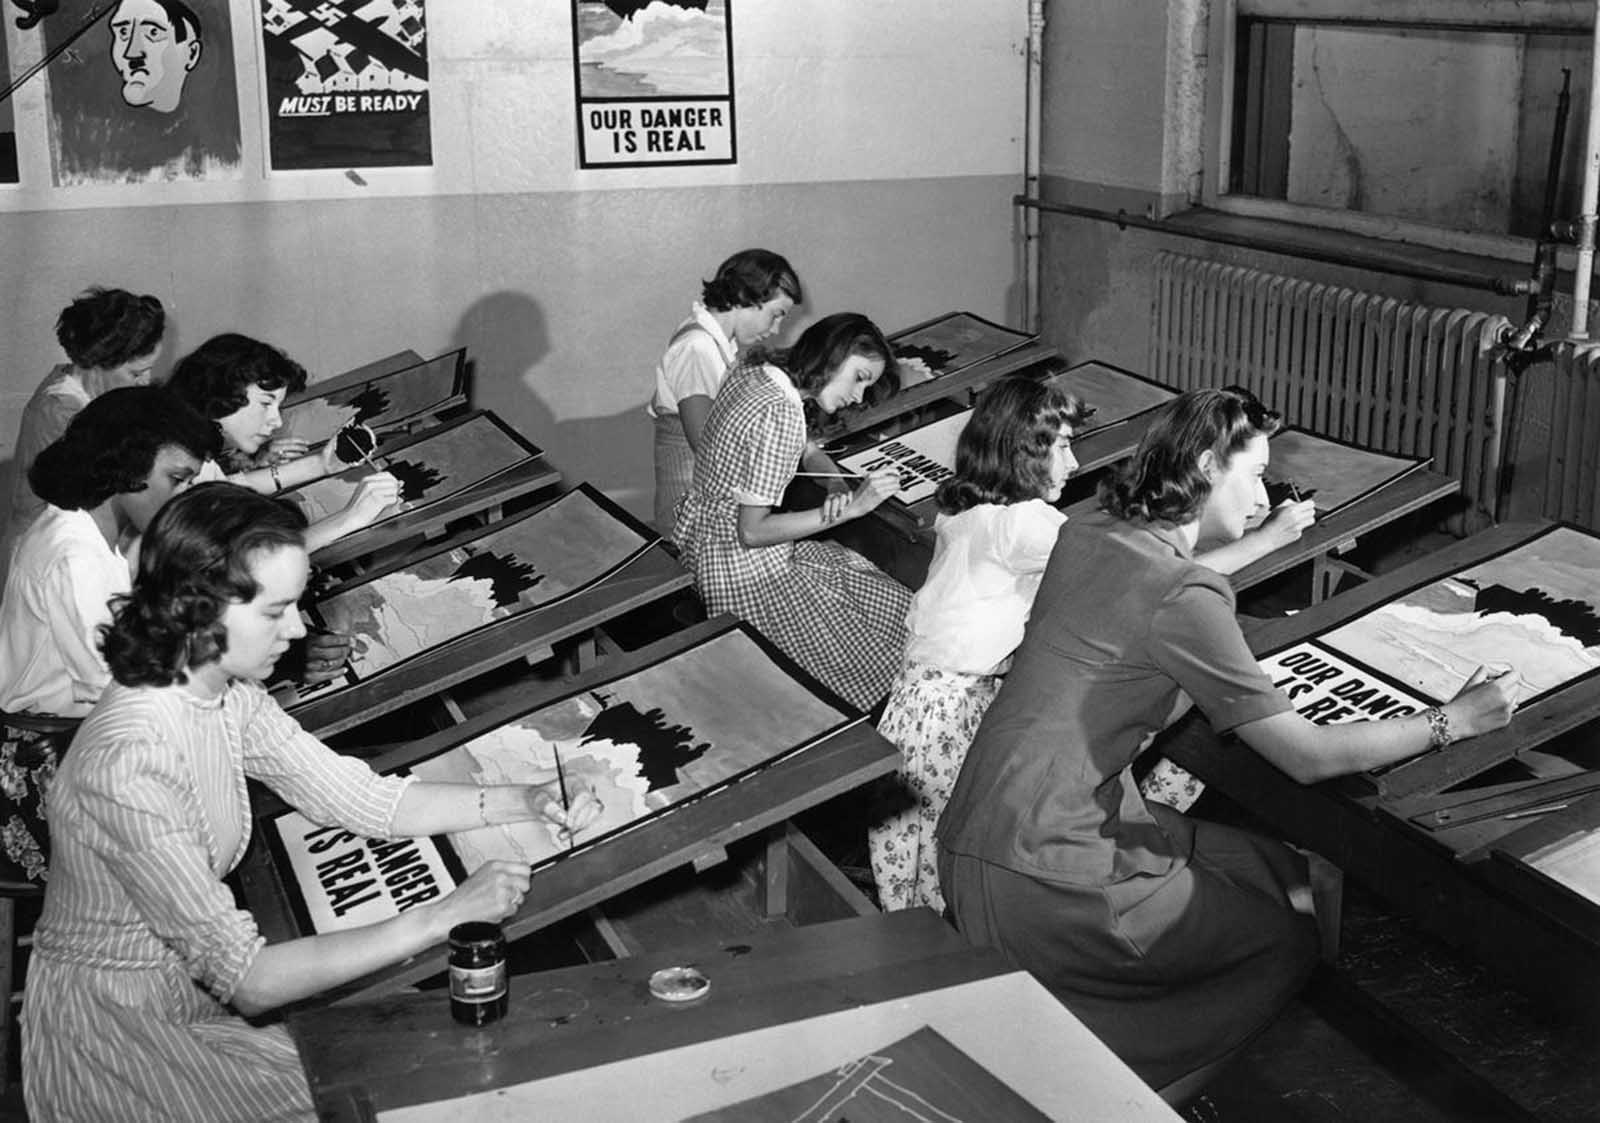 The art assembly line of female students busily engaged in copying World War II propaganda posters in Port Washington, New York, on July 8, 1942. The master poster is hanging in the background.